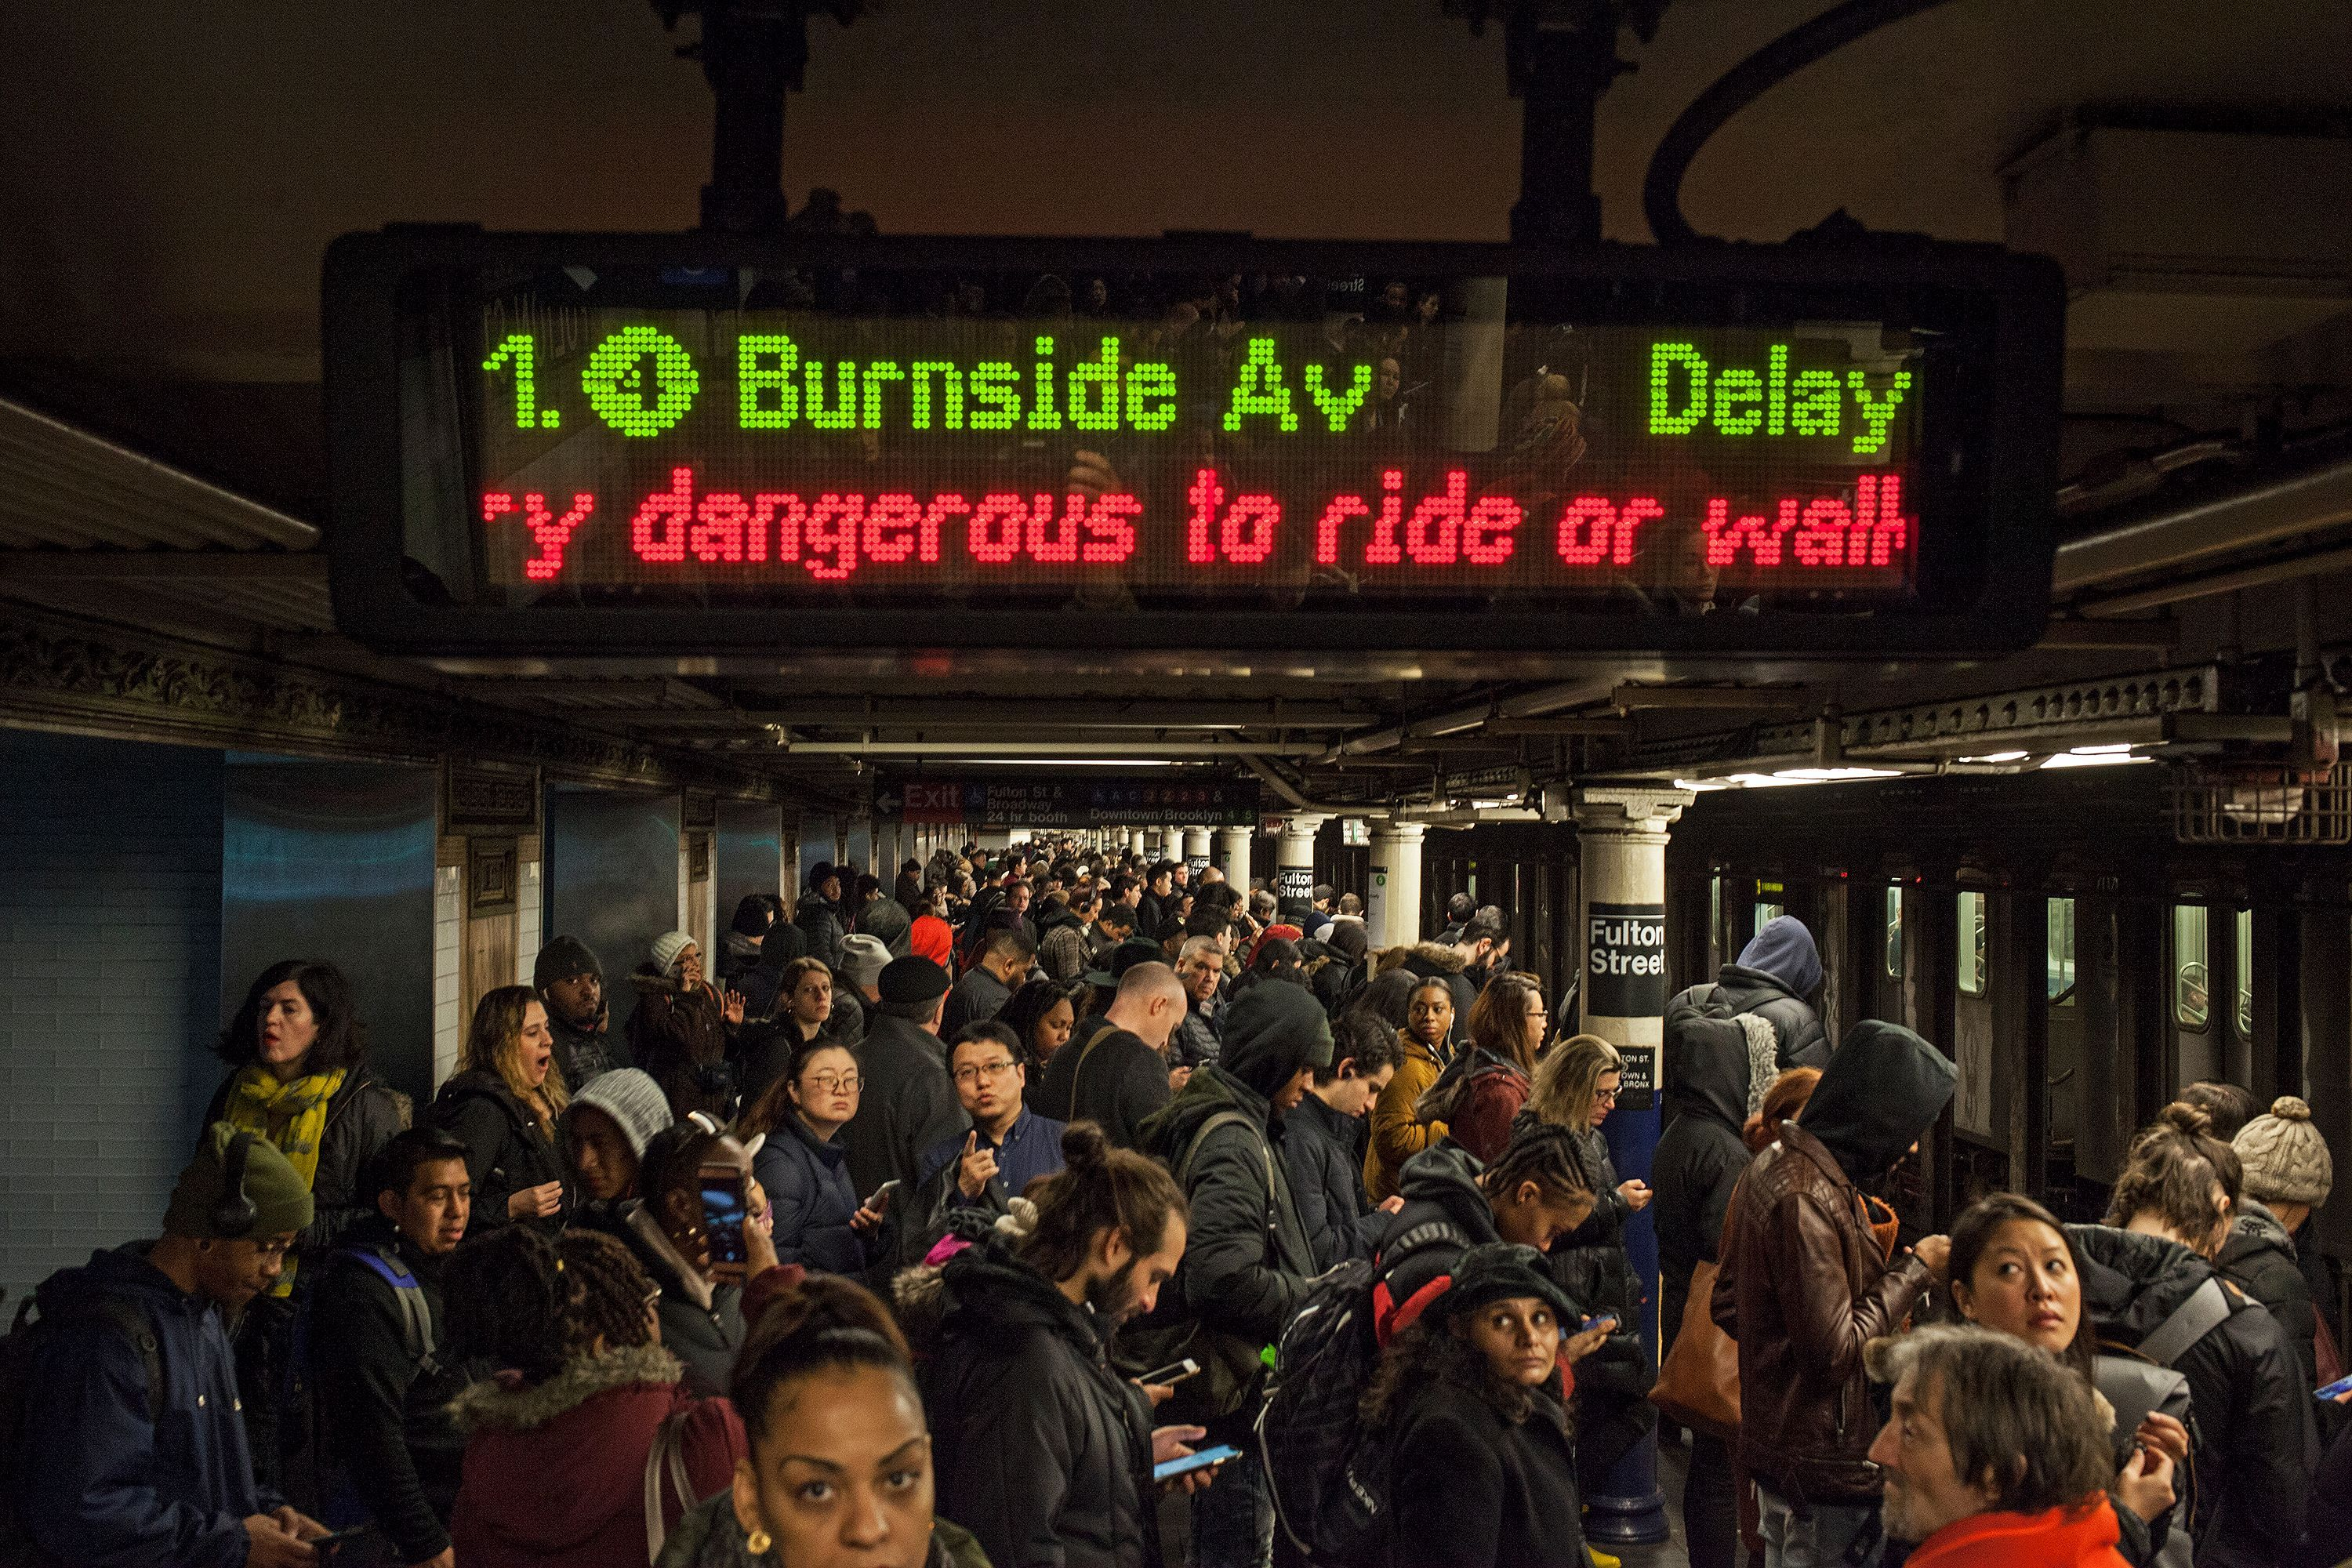 Riders wait for a 4 or 5 train at the Fulton Transit Center during a morning commute riddled with delays, Feb. 8, 2019.